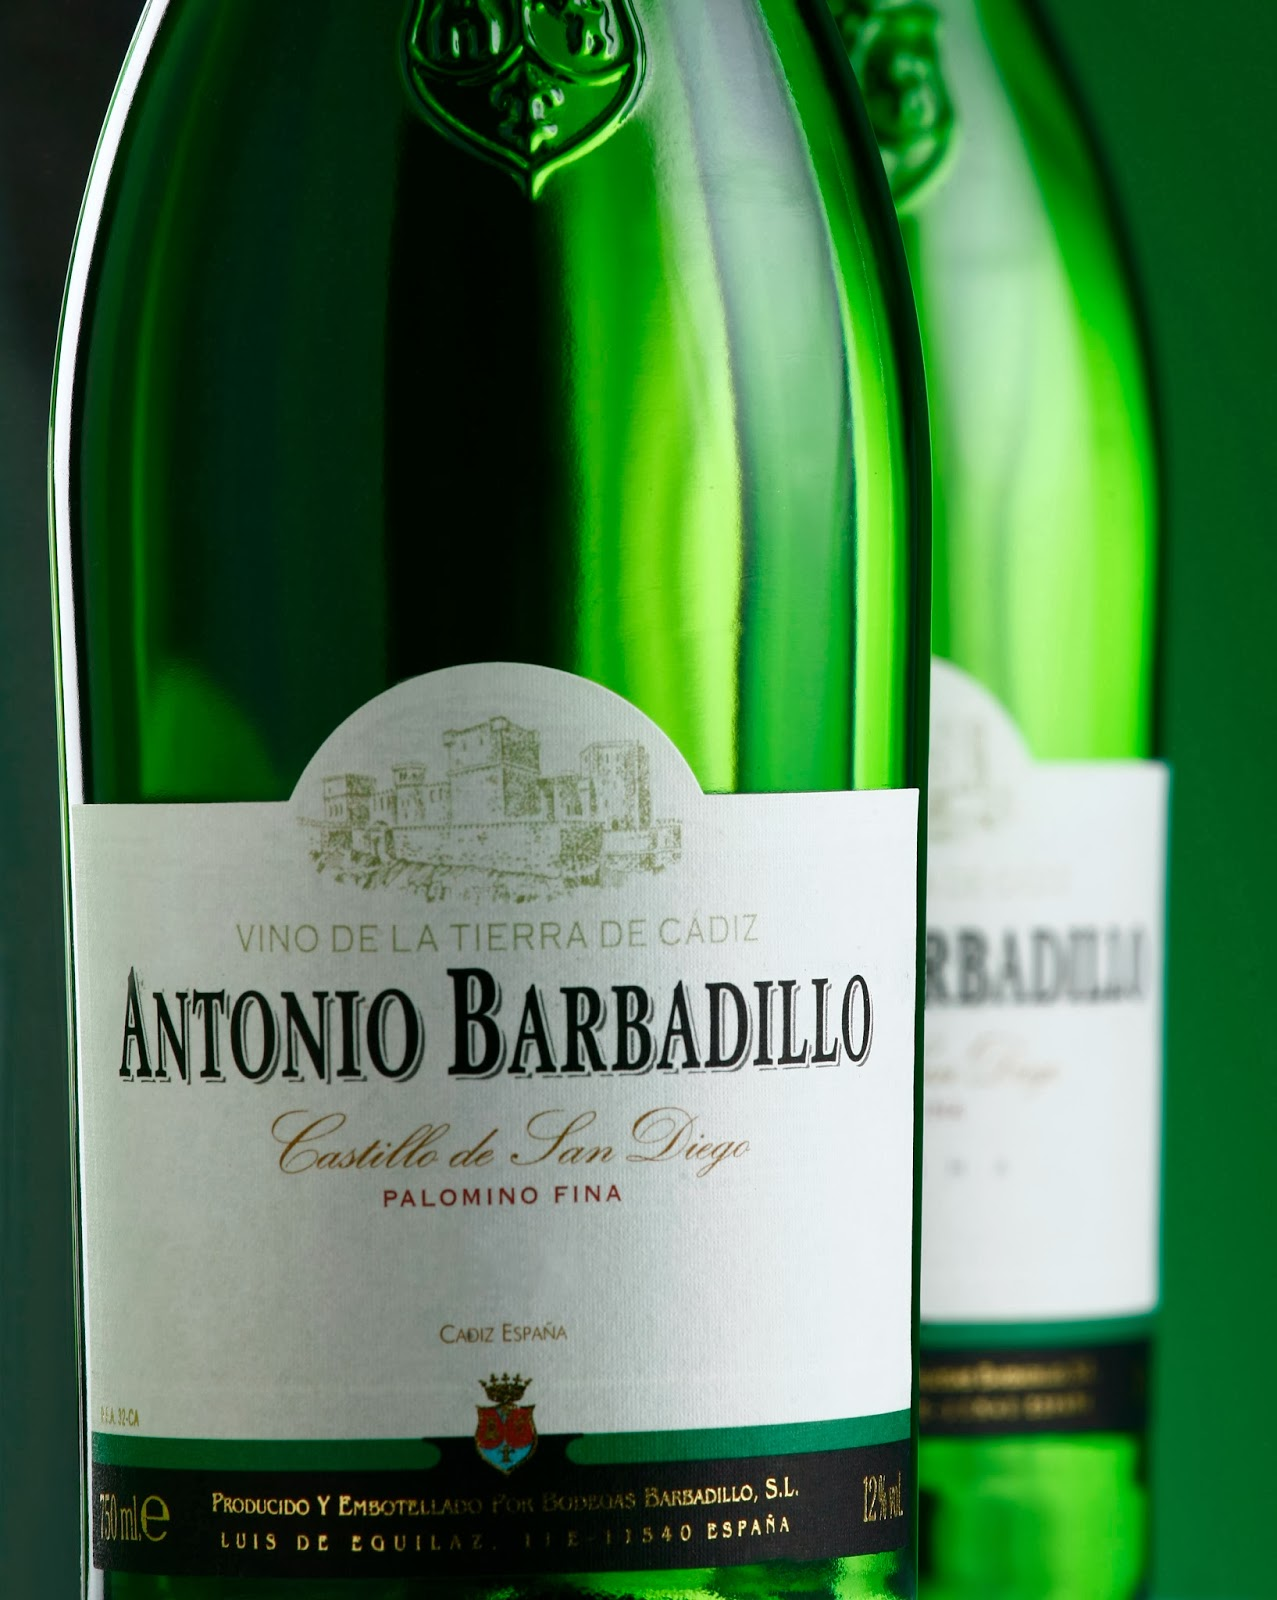 Packaging diferente para botella de vino